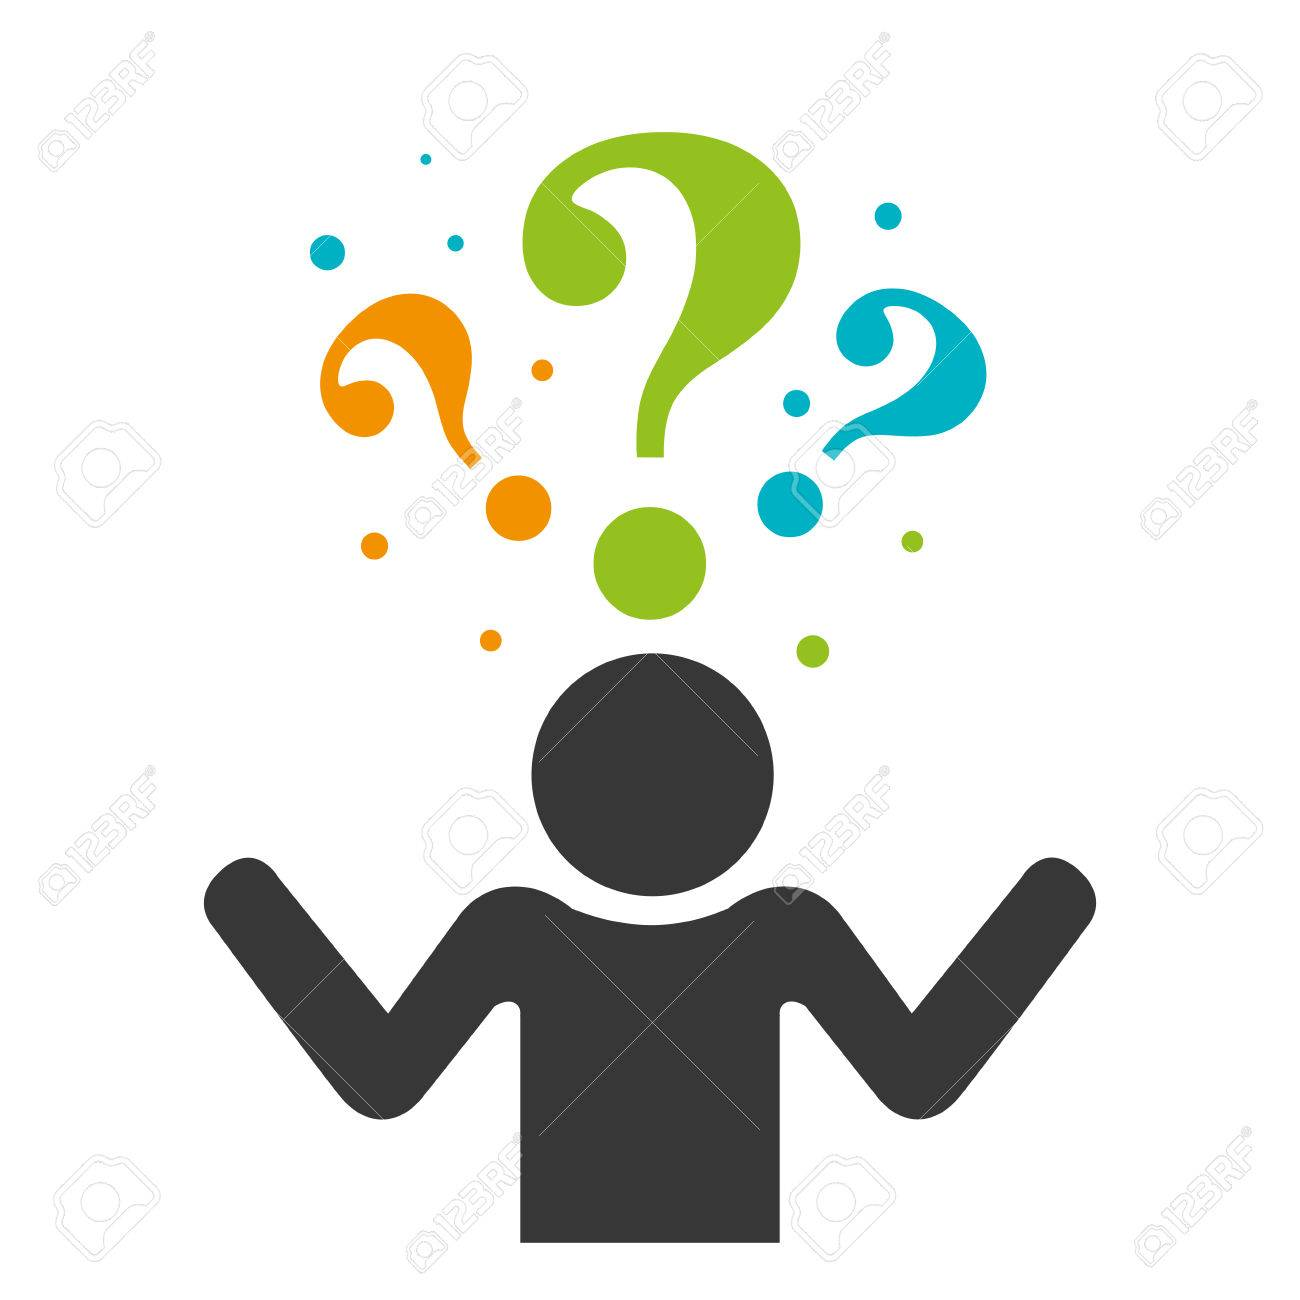 person silhouette with question mark vector illustration design rh 123rf com question mark vector icon question mark vector icon